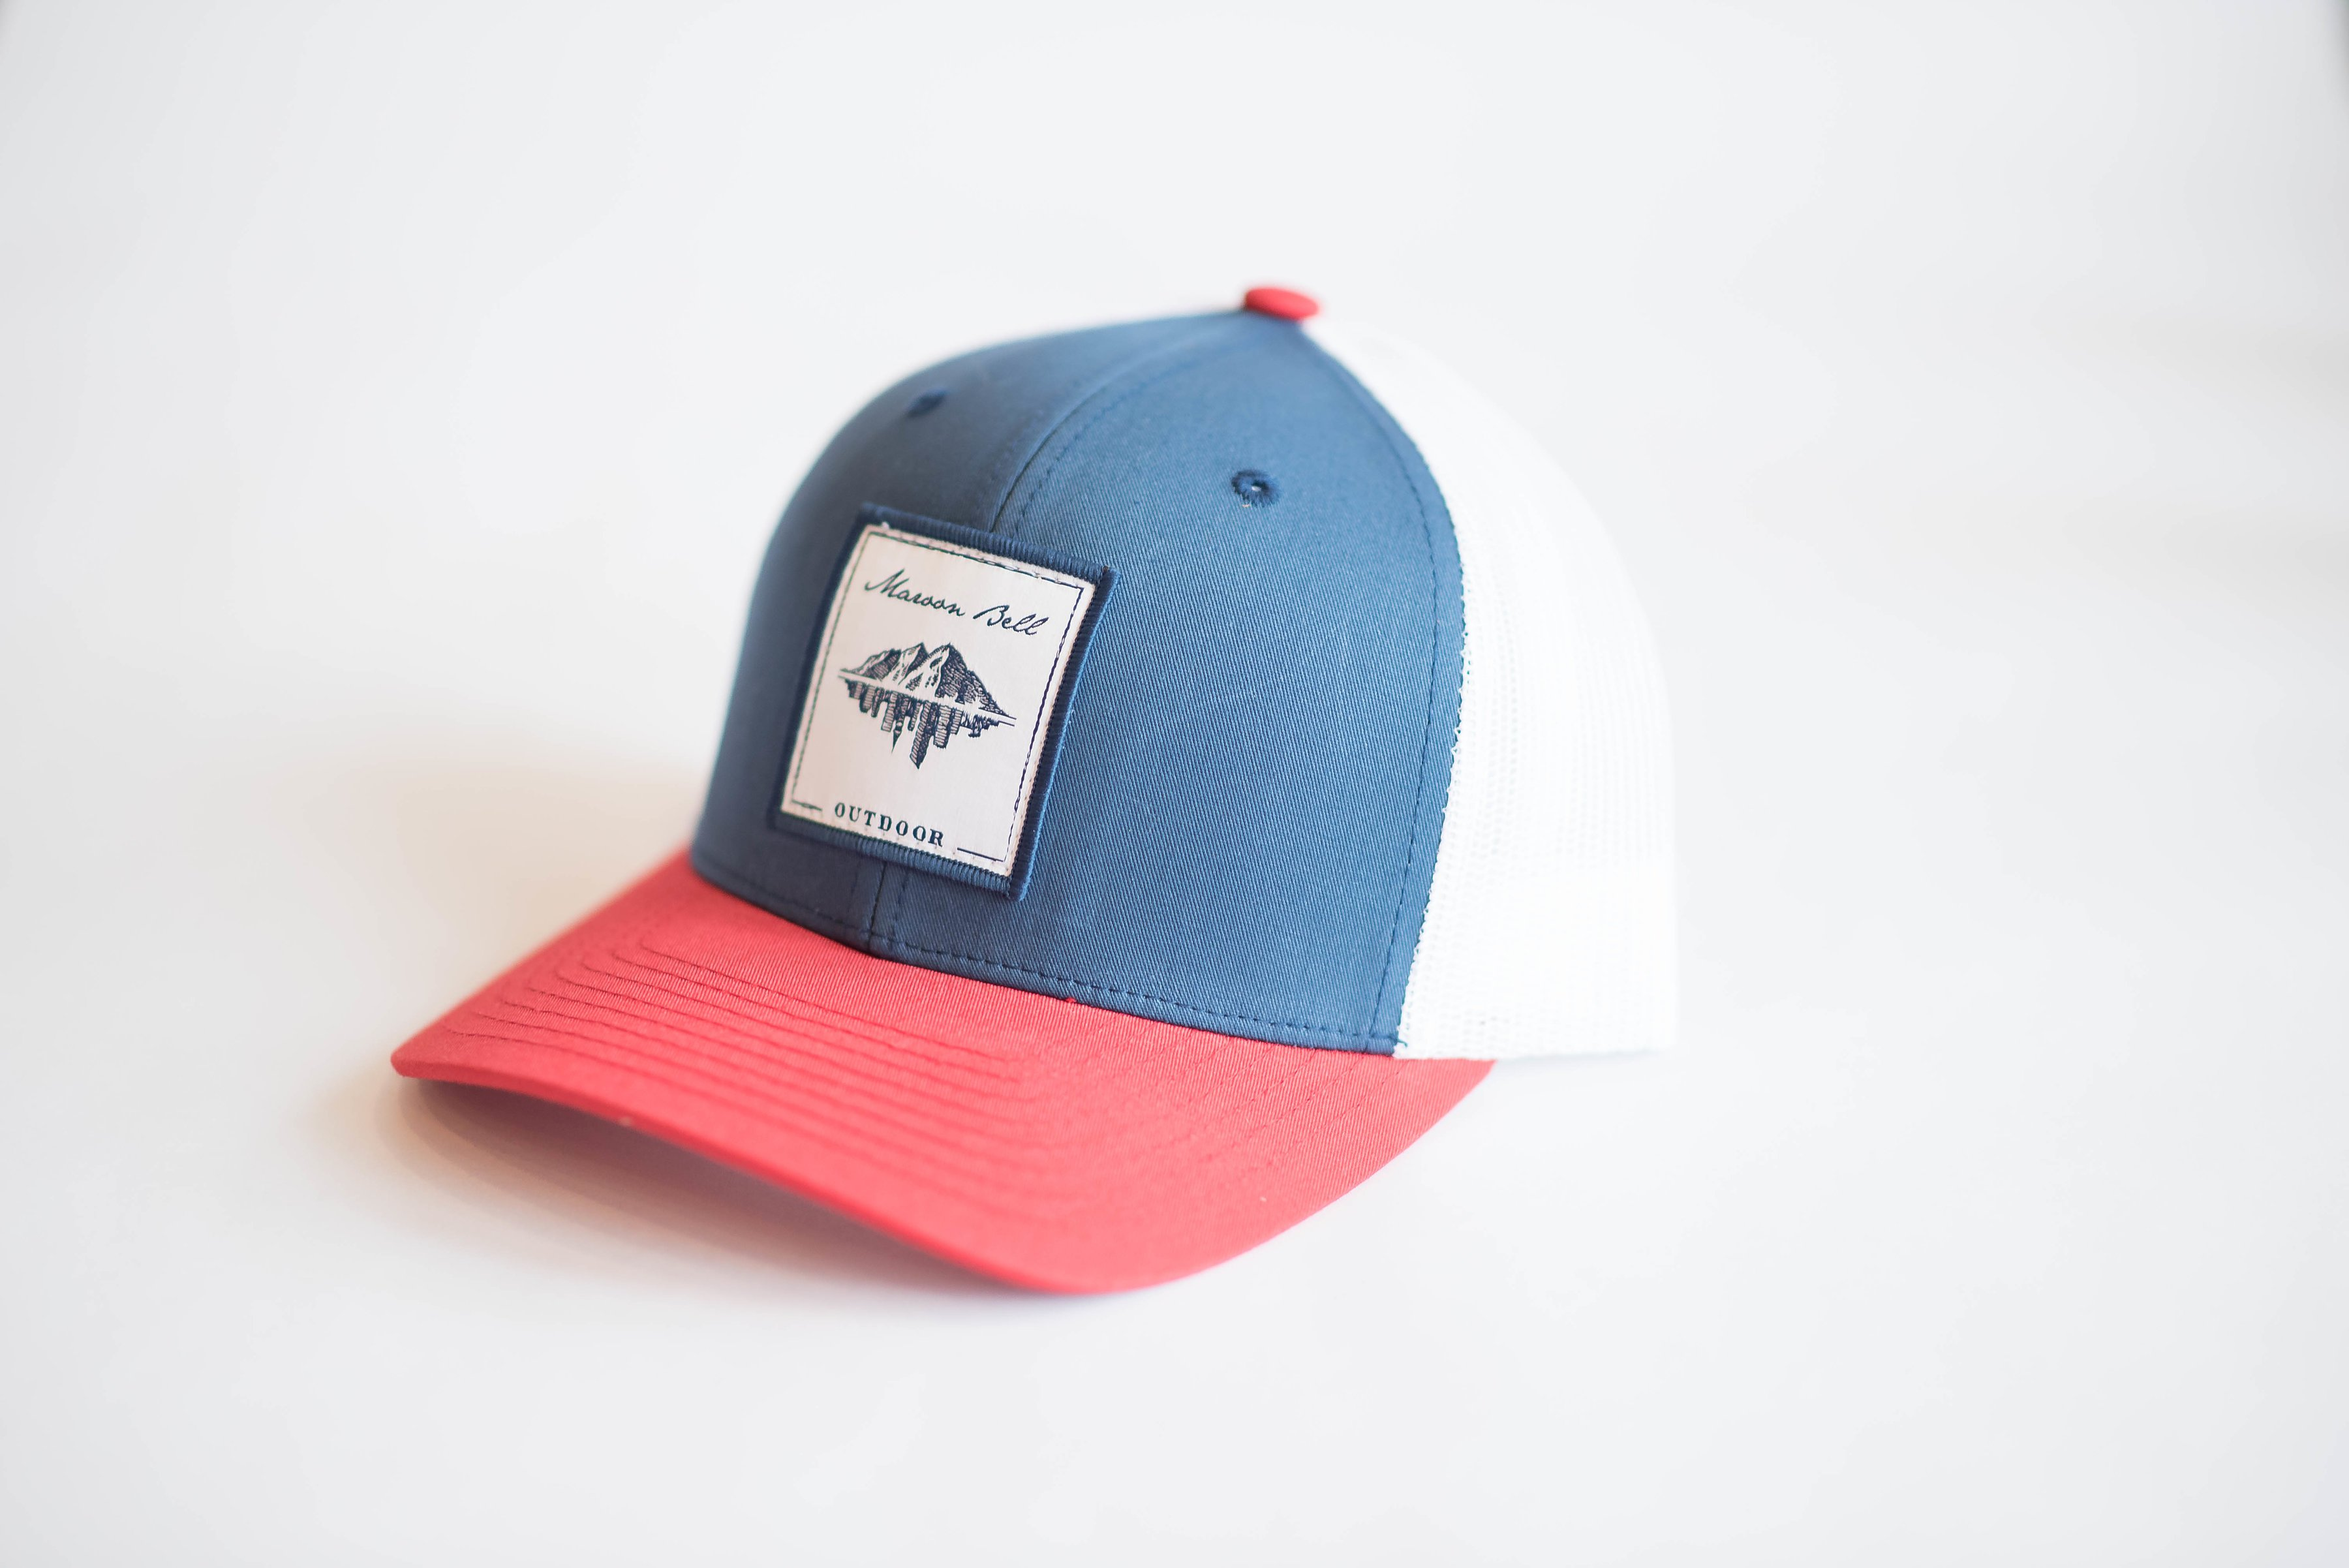 Olympic Red White   Blue Trucker w  Leather   Embroidered Patch 2f02f3f92b4